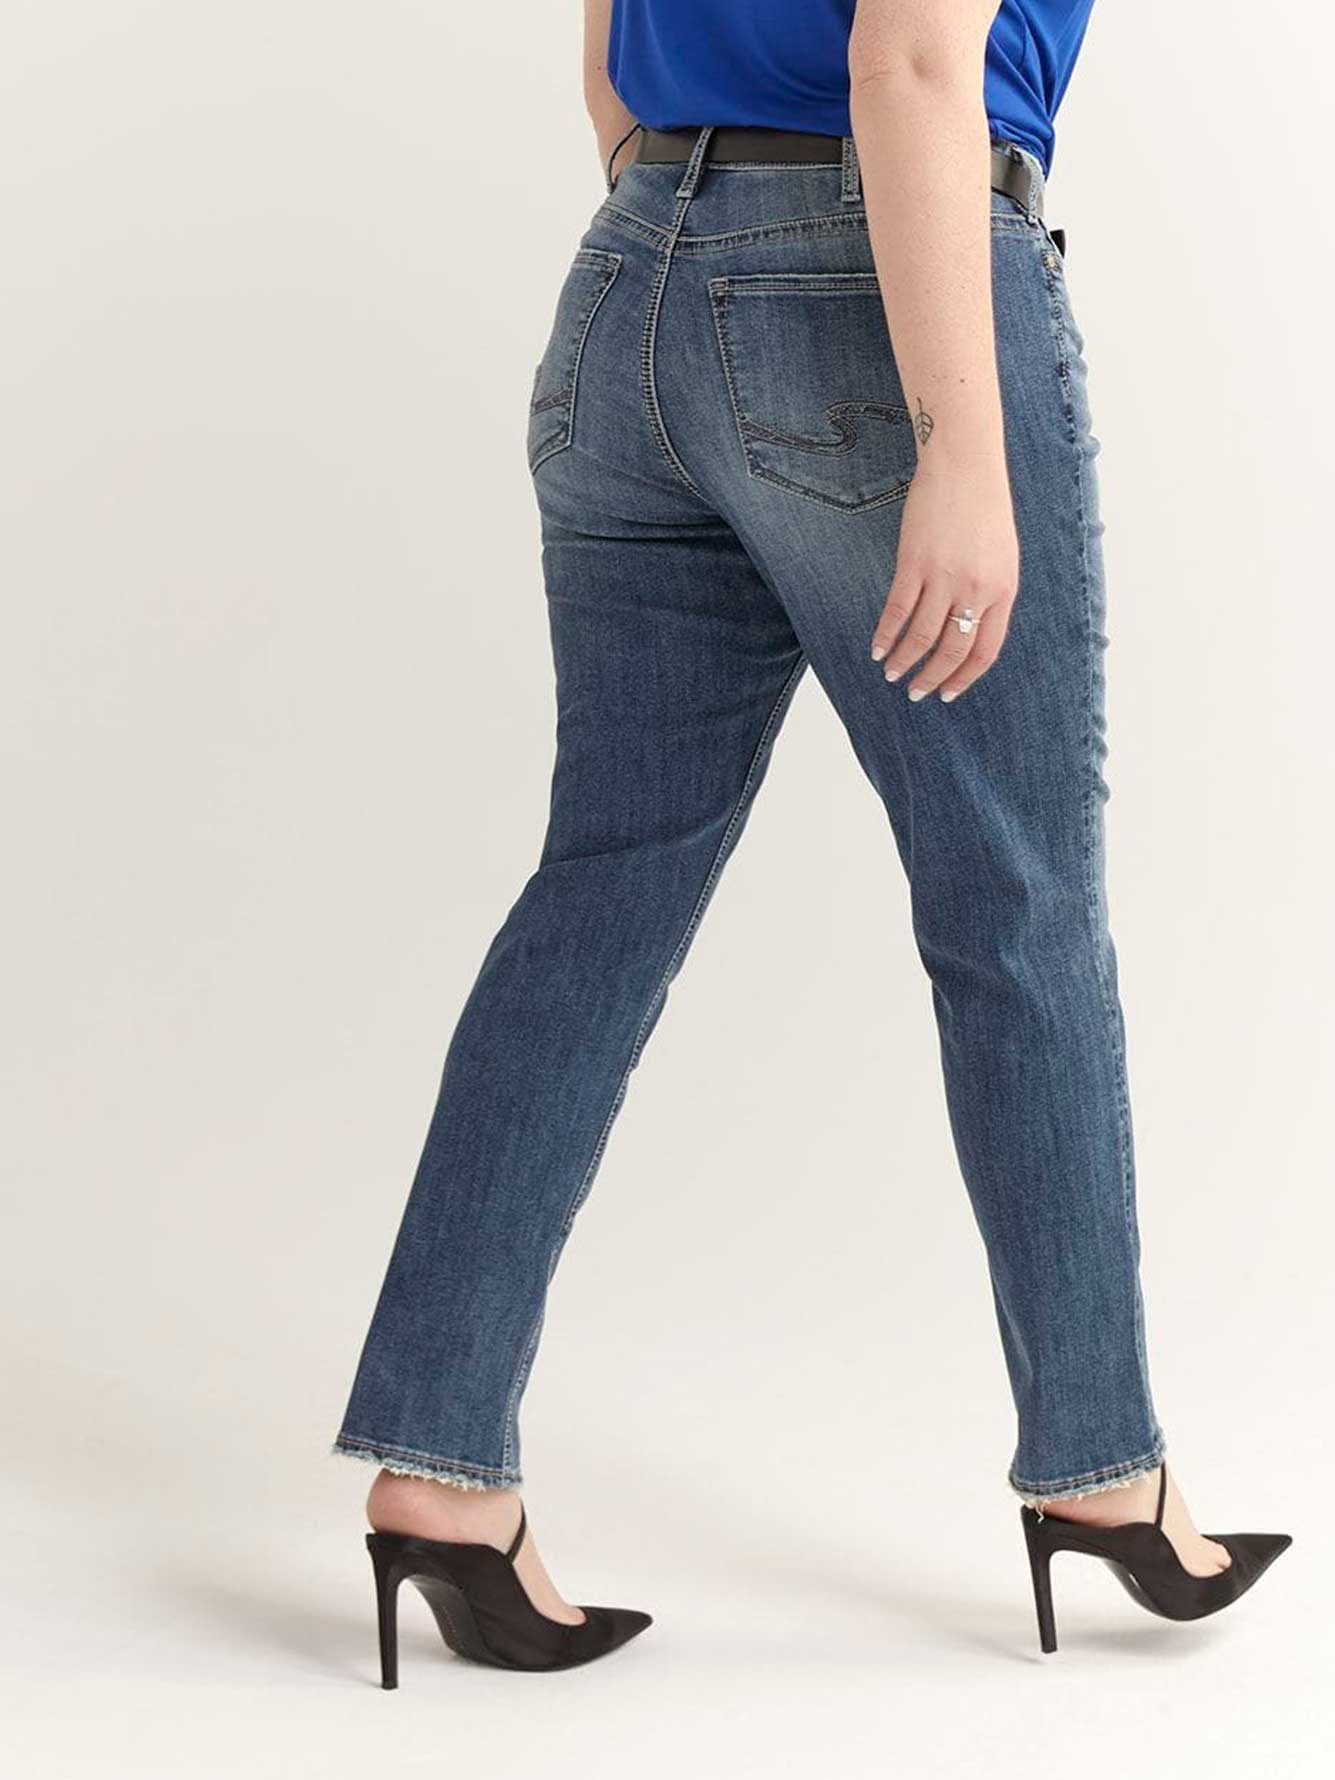 Avery Slim Denim - Silver Jeans